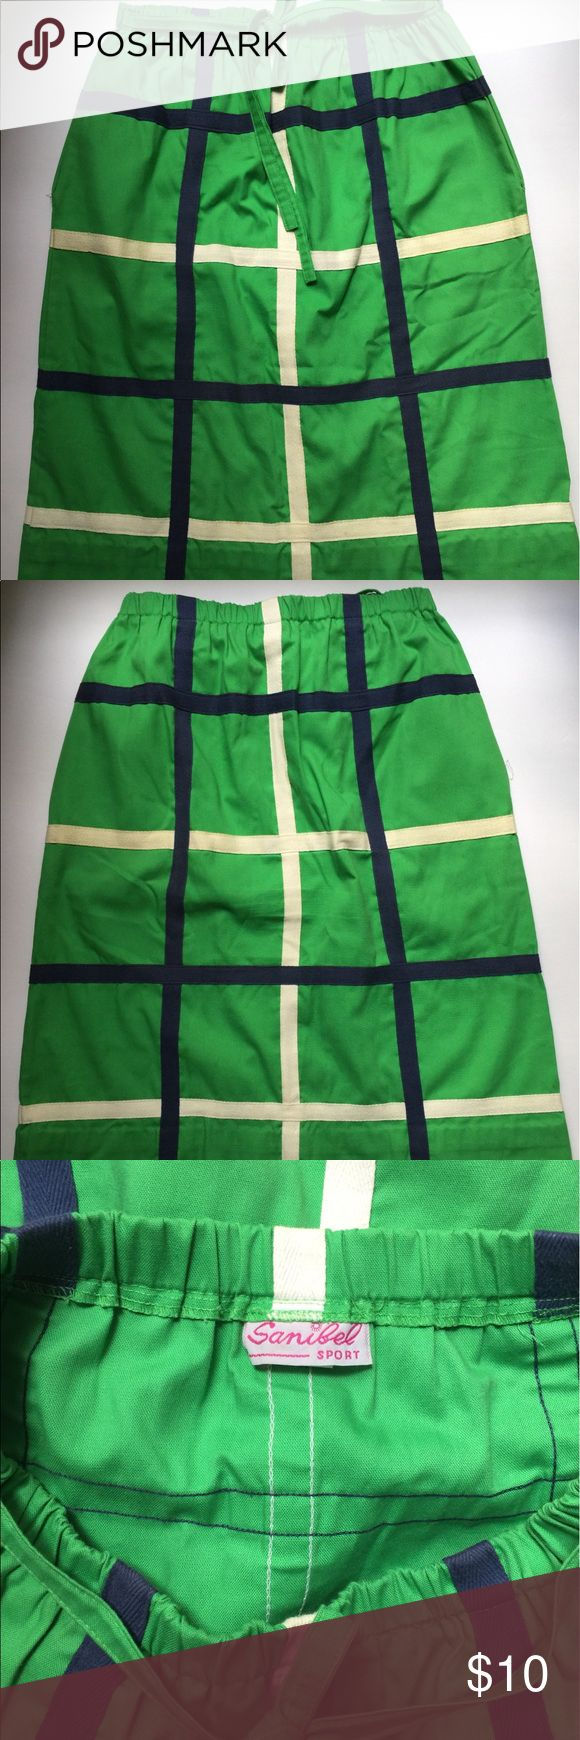 "**Vintage** SANIBEL SPORT Kelly Green Skirt Women's SANIBEL SPORT Kelly green with navy blue and white ribbon detail.  Elastic waist, tie, and 2 front pockets.  Size:  Unmarked Measurements: Waist = 14"" Length = 26"" Hips = 22""  In overall good vintage condition.  There are 2 small stains on the bottom front of the skirt, loose stitching both pockets and some discoloration on left rear white ribbon detail (please see photos). Sanibel Sport Skirts"